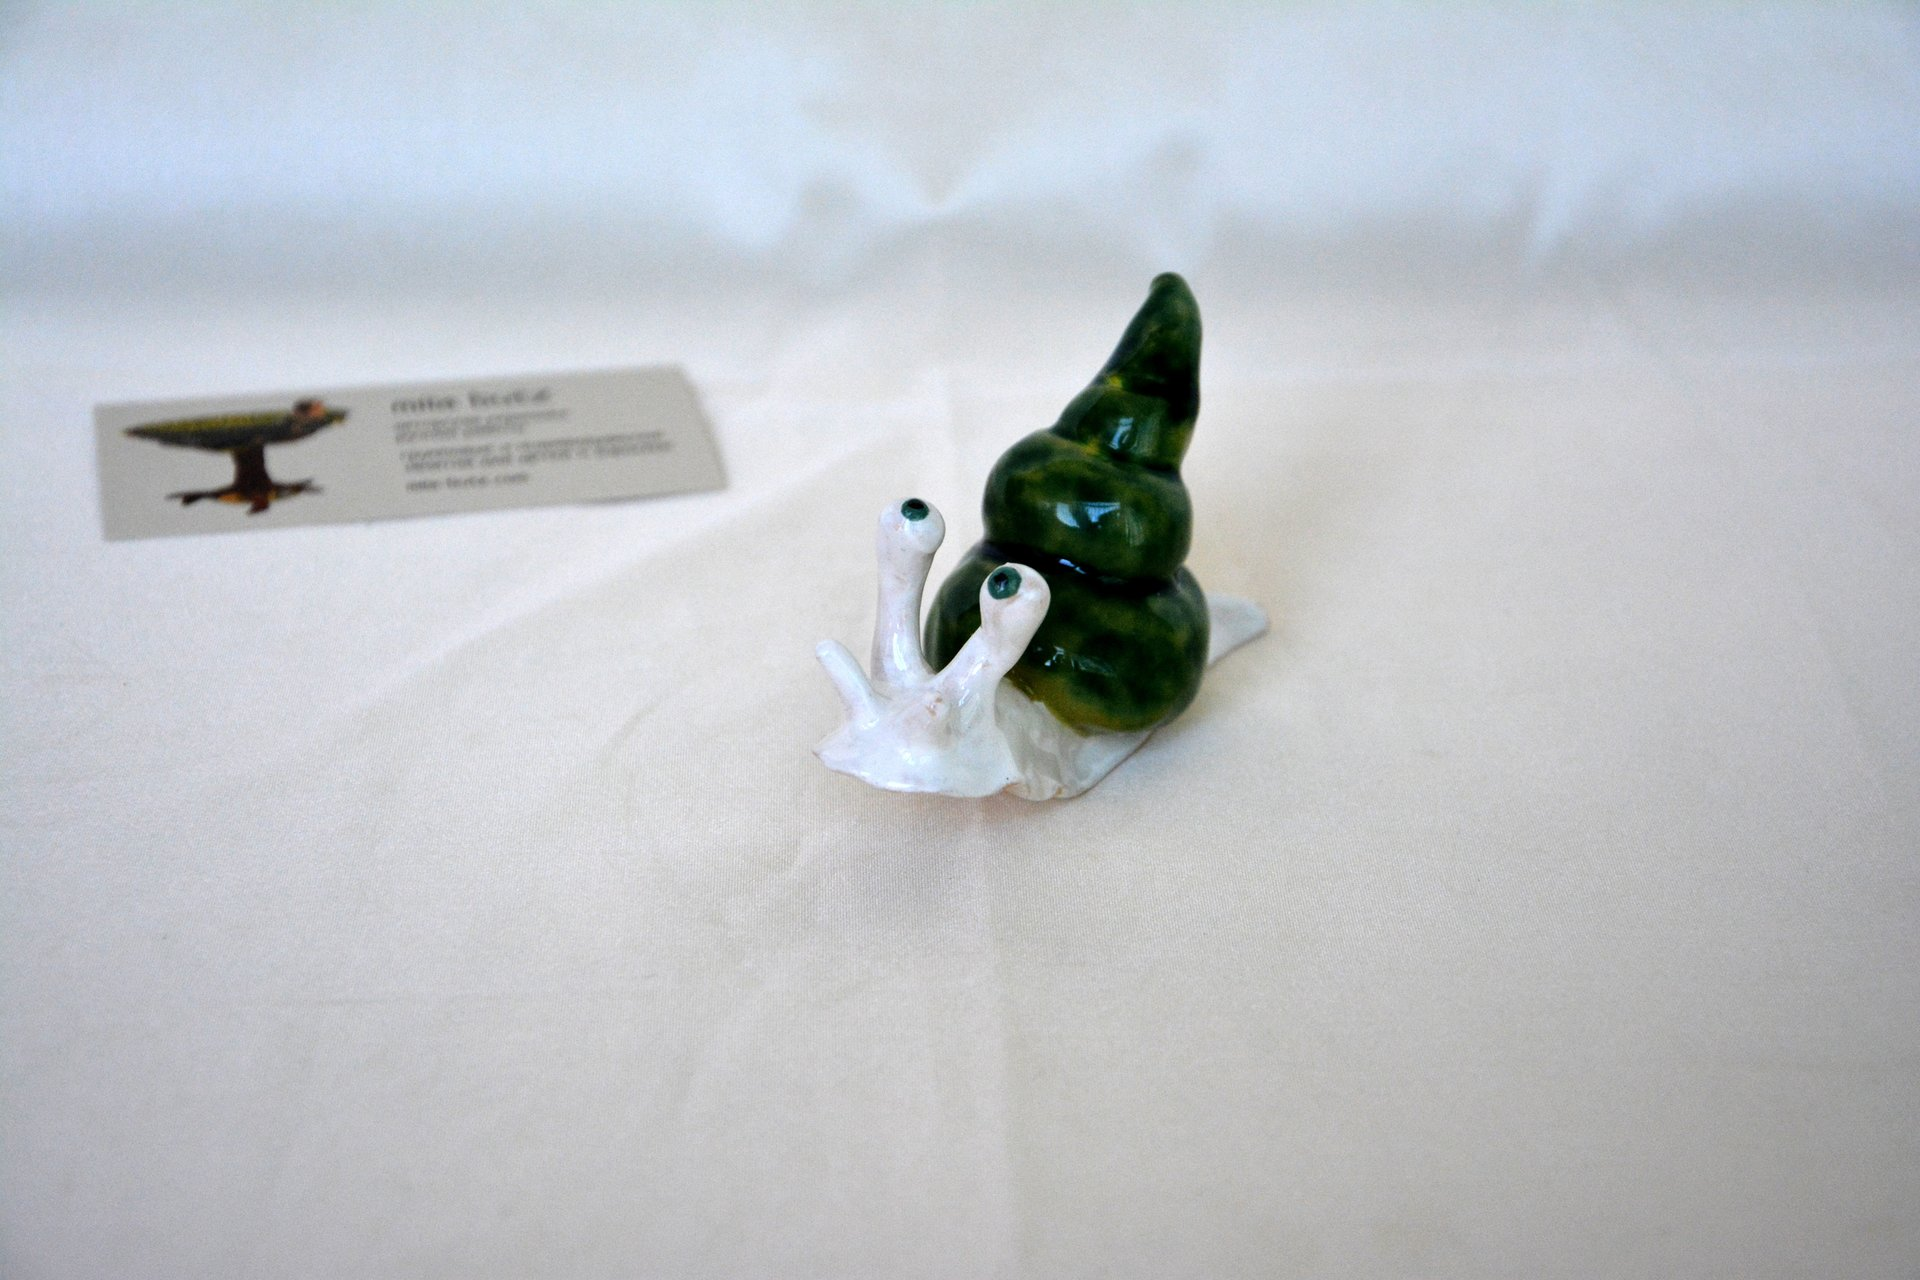 Figurine of a garden Cochlea, height - 3 cm, photo 6 of 6.